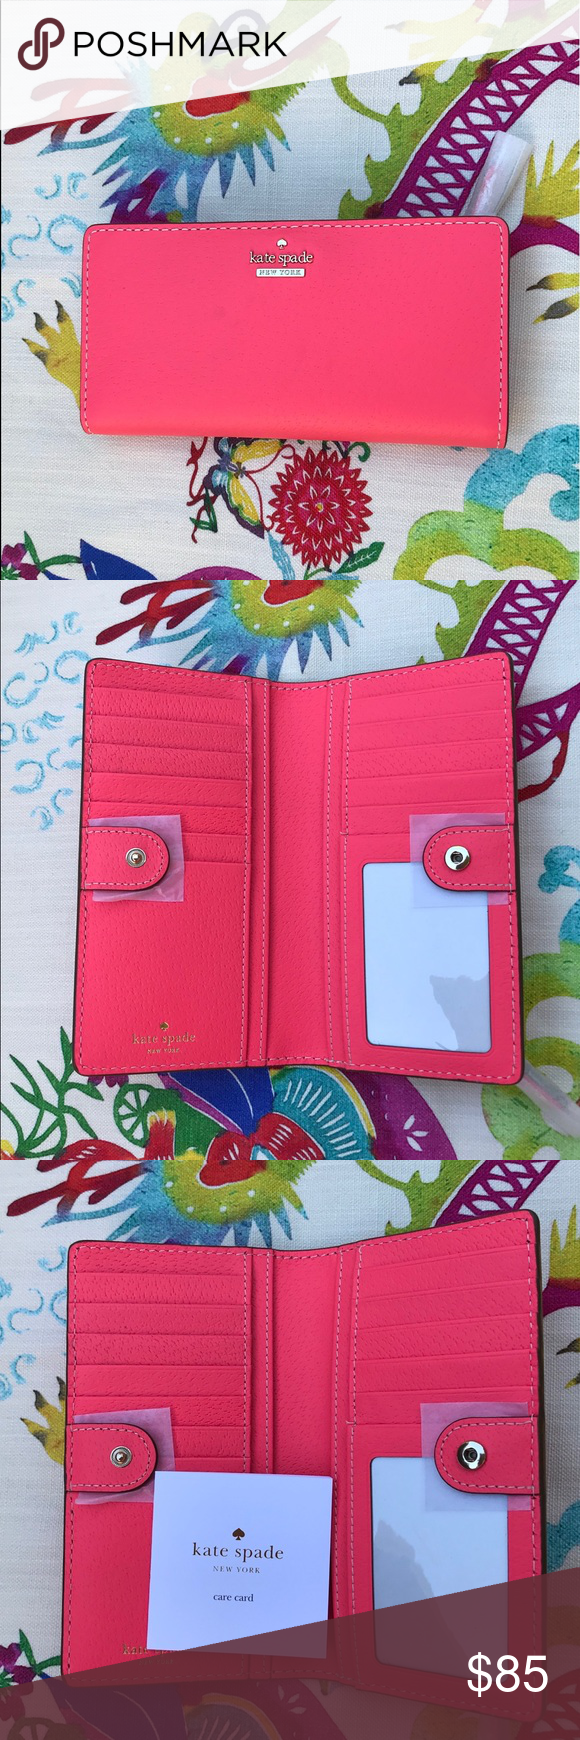 """b83077afb023 🆕🆕KATE SPADE Wallet in Bright Flamingo😎 NEW WITH TAGS Thompson Street  Stacy Color  Bright Flamingo - FUN summer color! 6.6""""w X 3.5""""h X 0.5""""d 12  credit ..."""